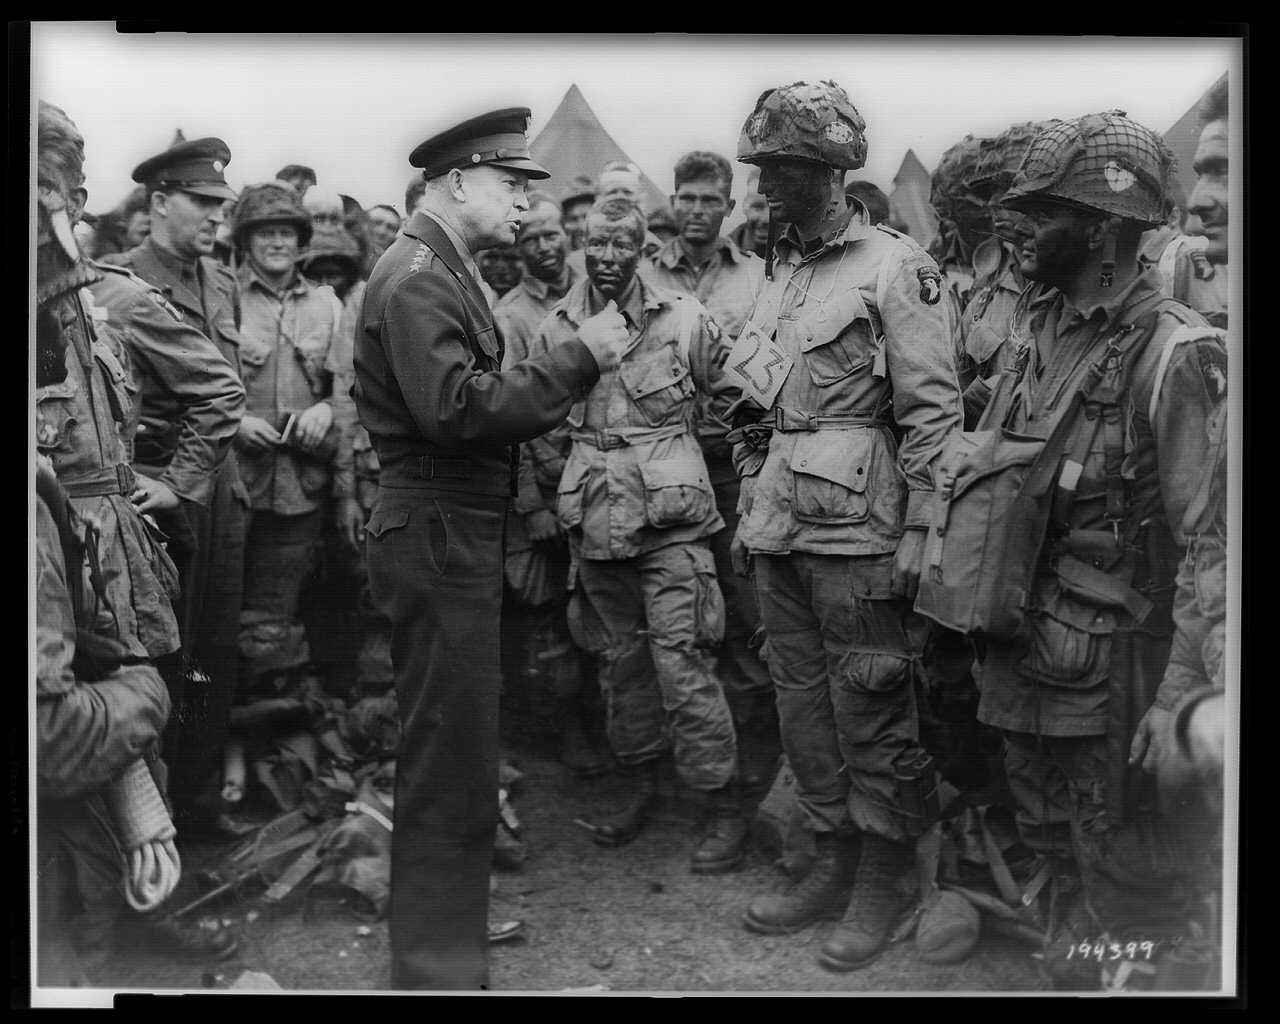 Dwight Eisenhower giving orders to American paratroopers in England